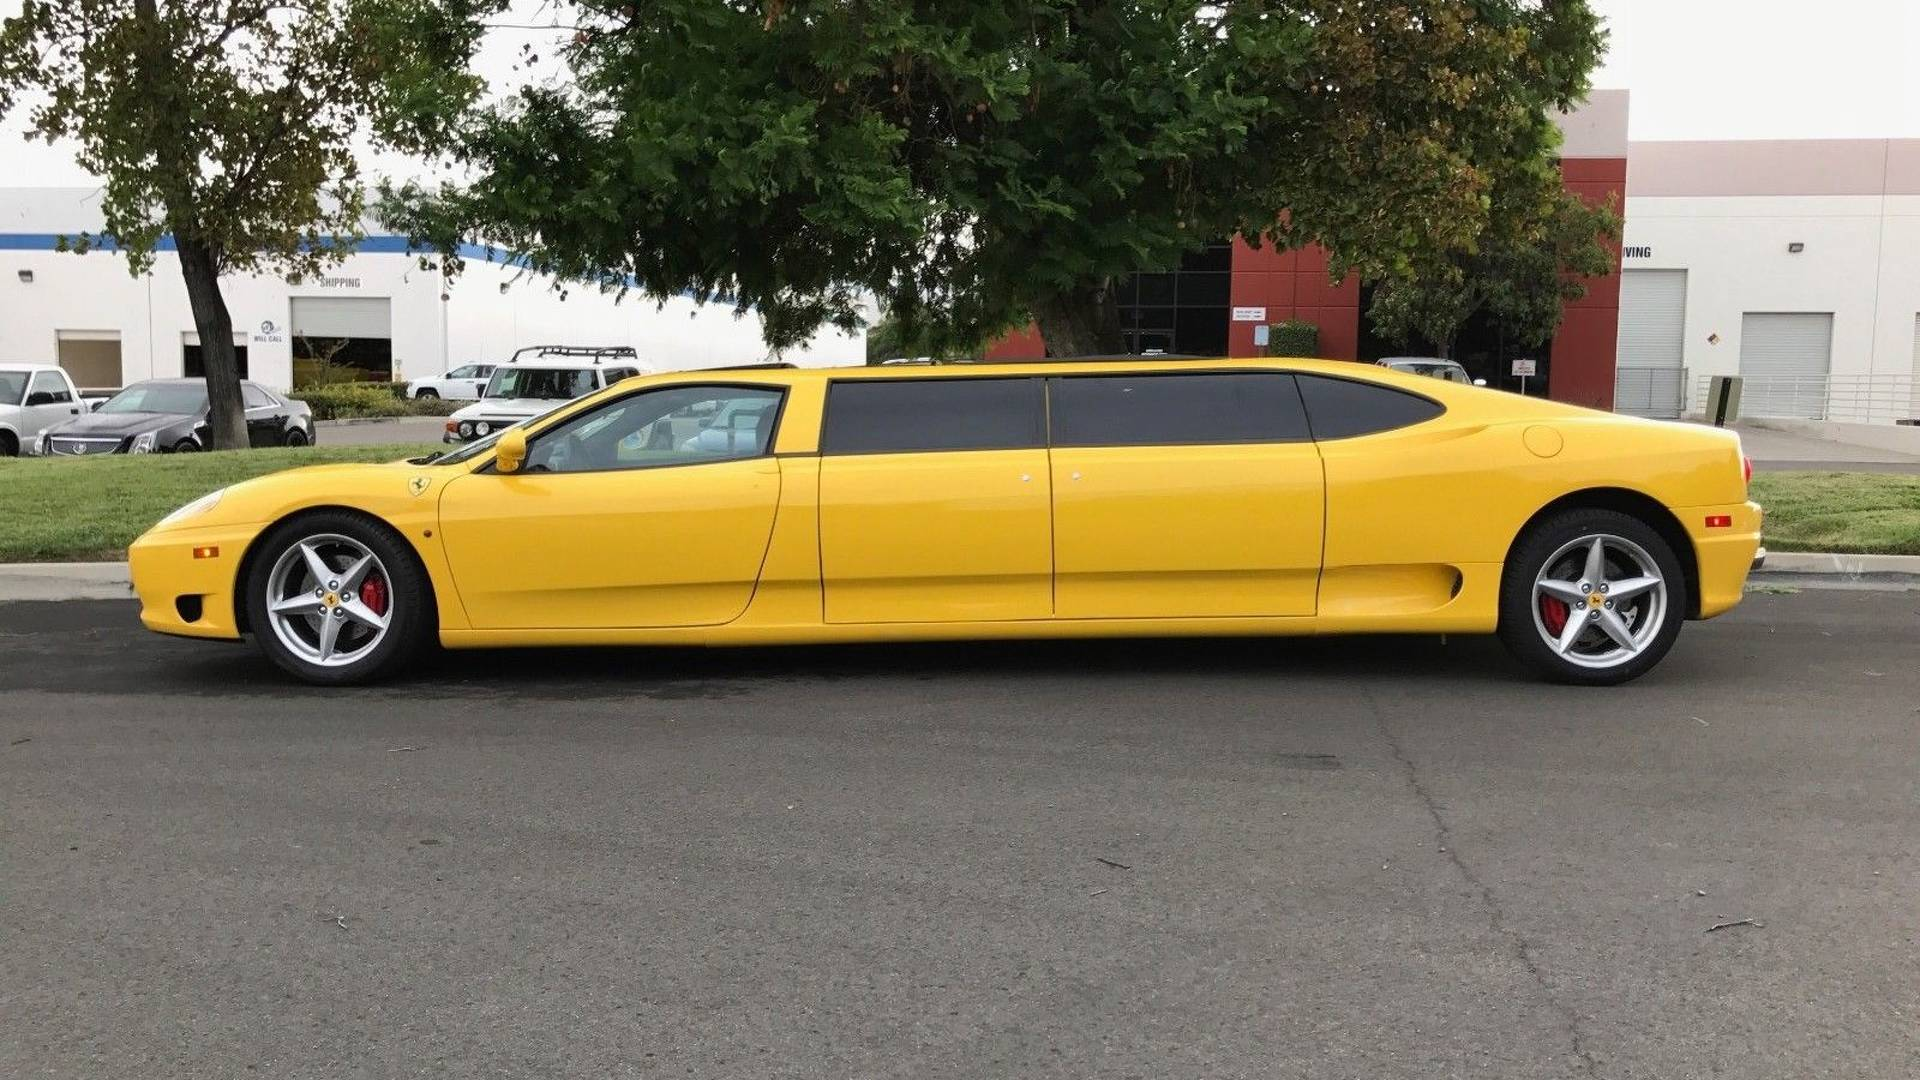 Limousine For Sale >> Ferrari 360 Limo Gets 104 400 Bid On Ebay But Fails To Sell